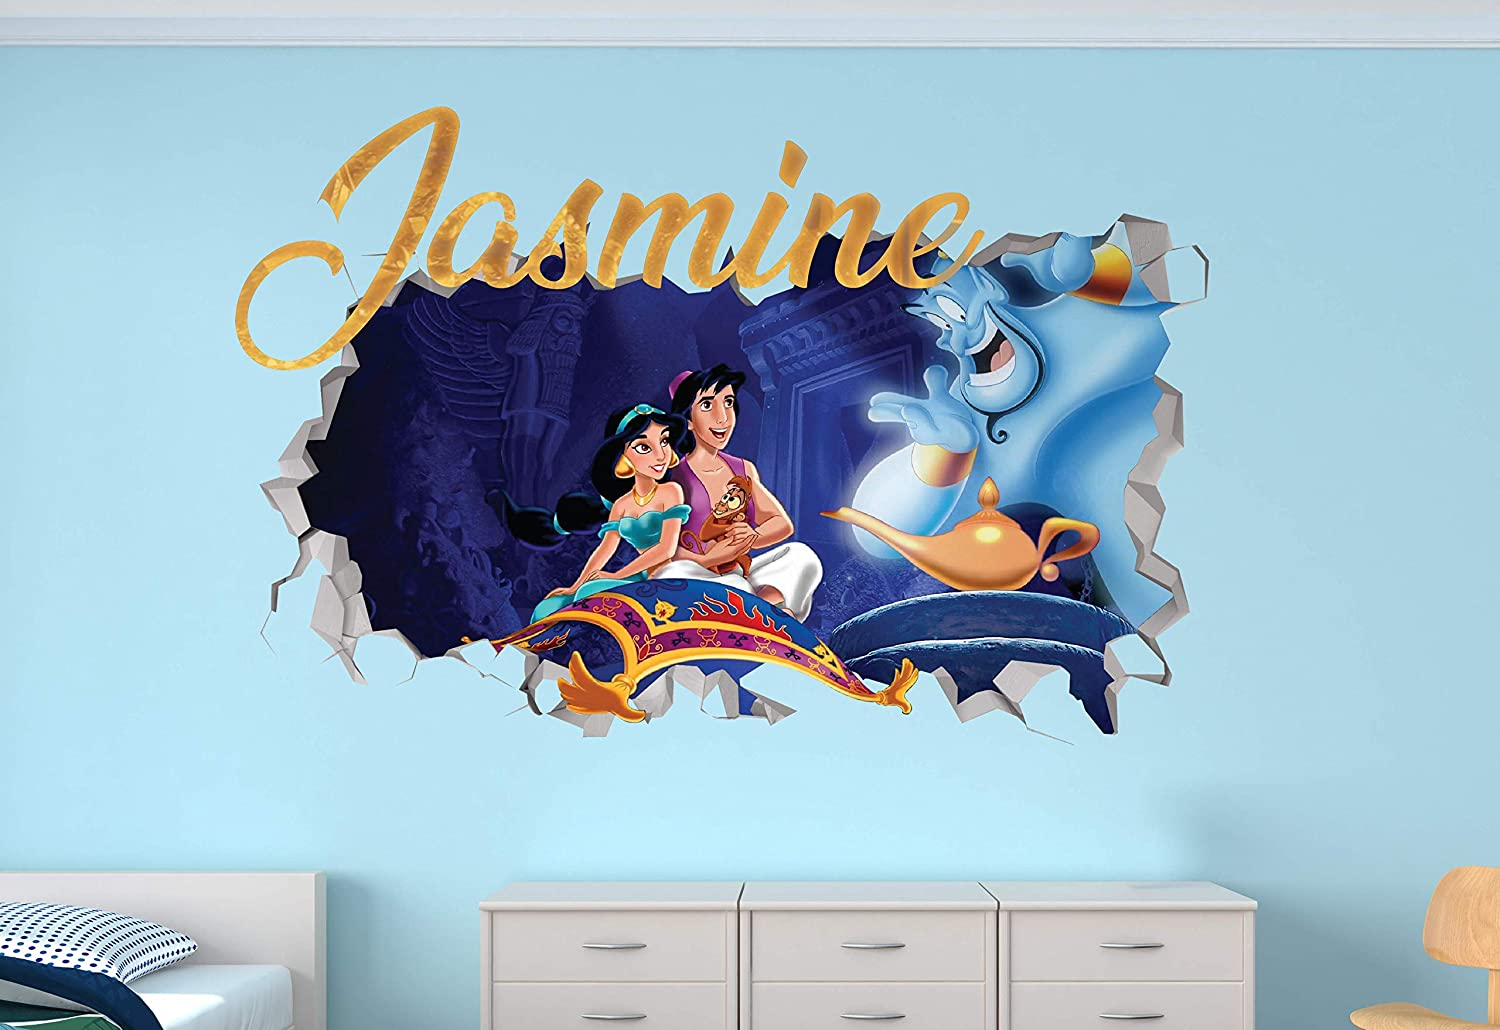 "Aladdin Custom Name 3D Personalized Wall Decal Sticker - Kids Wall Decor - Art Vinyl Wall Decal - MA347 (Small (Wide 22"" x 12"" Height))"